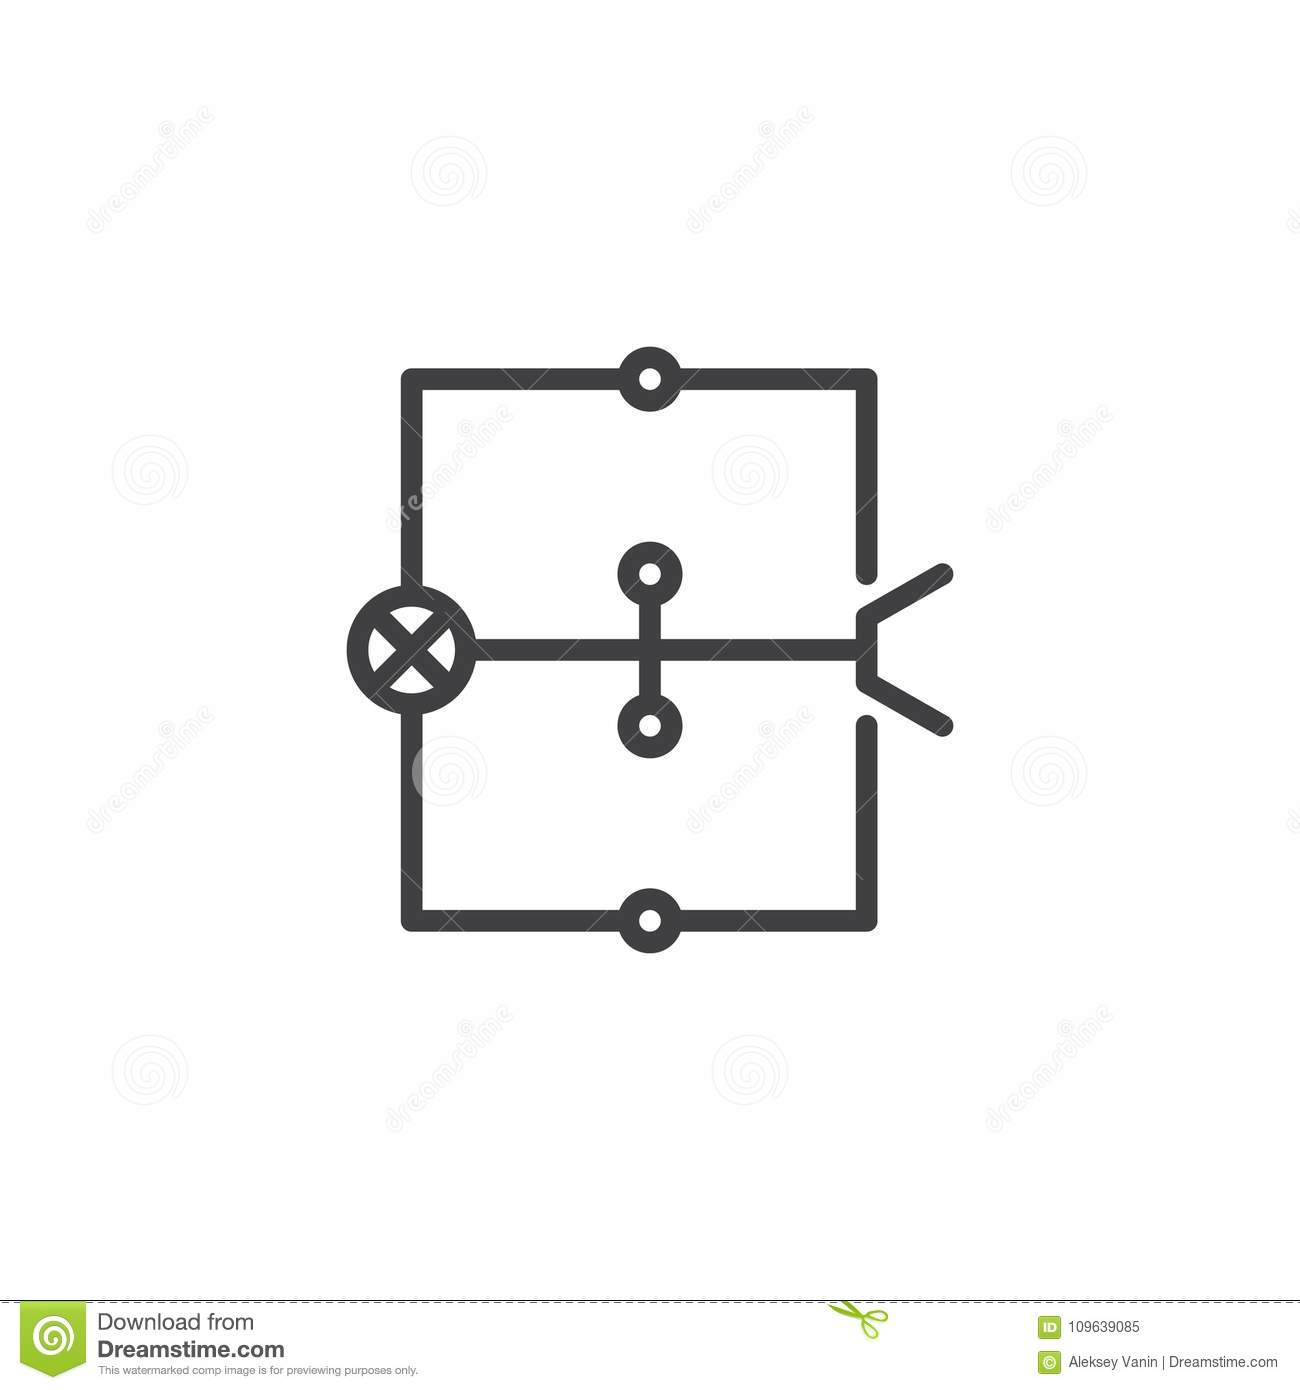 hight resolution of wiring diagram line icon